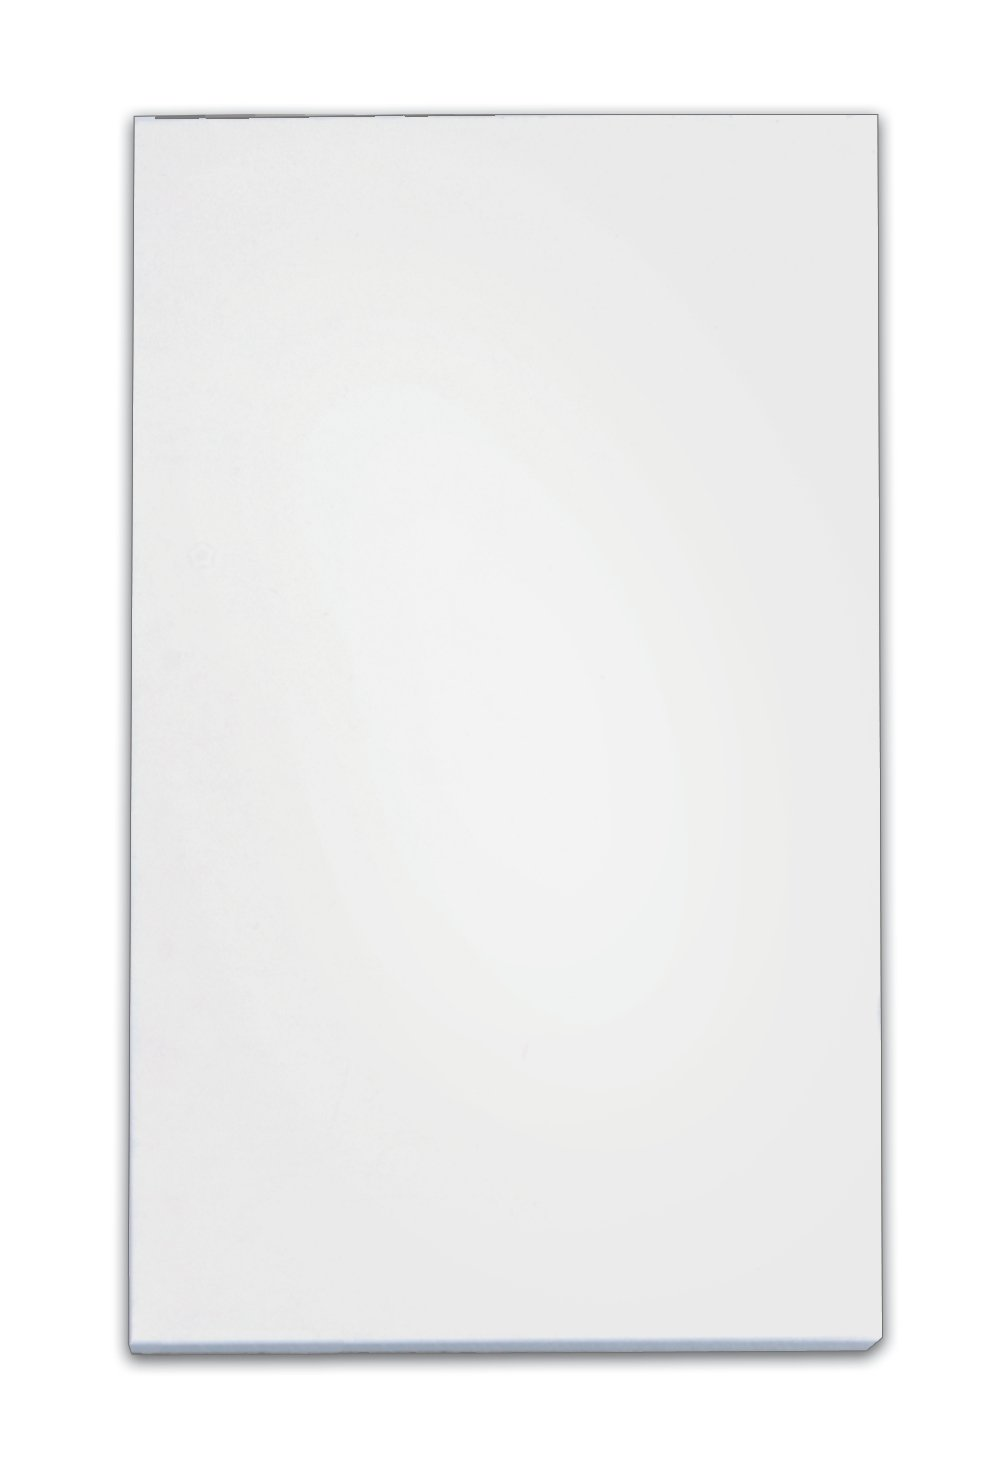 amazoncom tops memo pads 4 x 6 inches white 50 sheets per pad 12 pads per pack office products